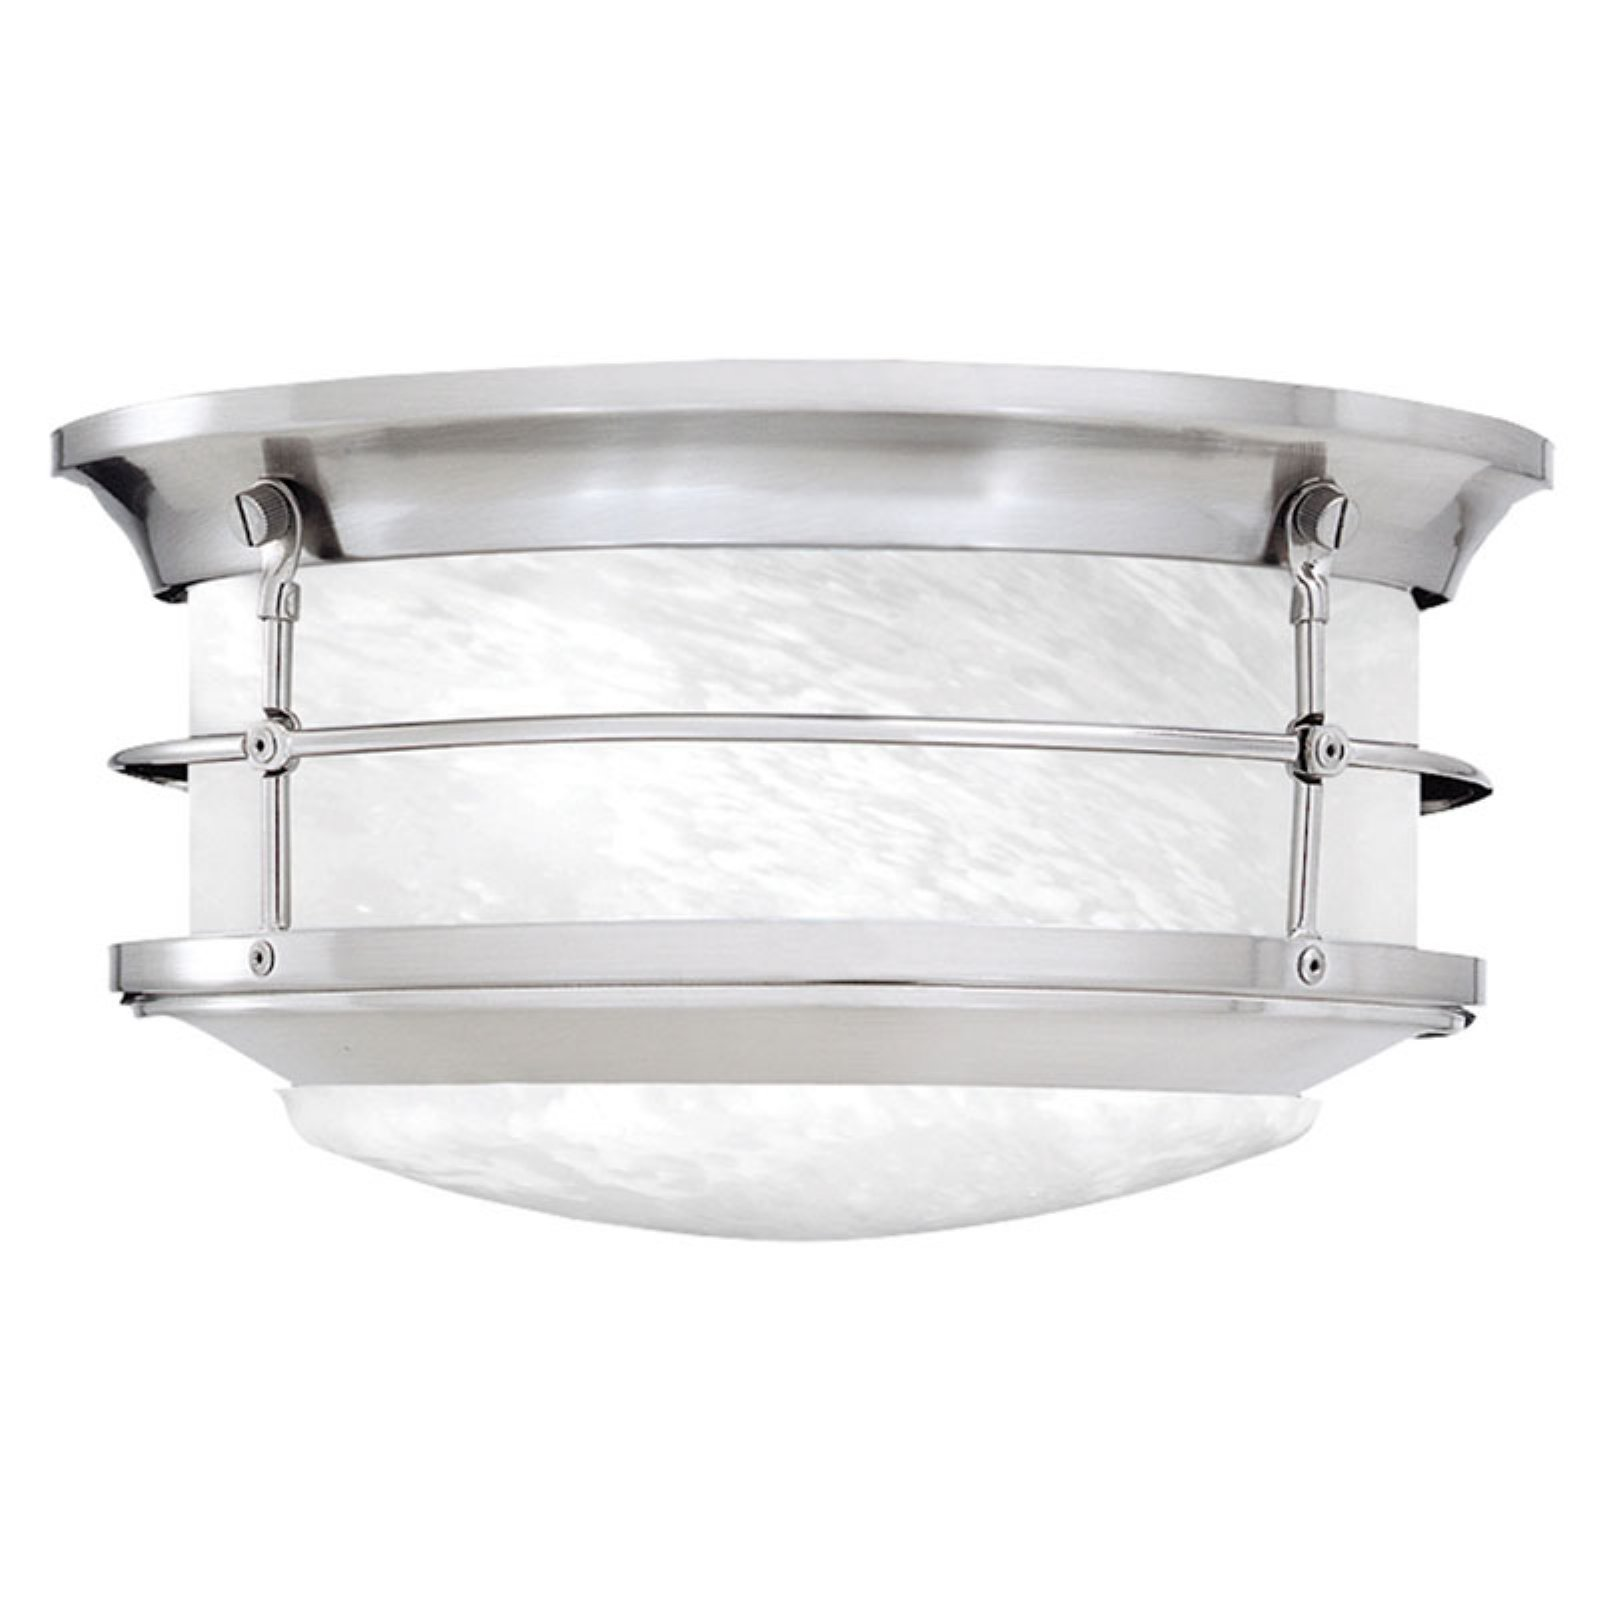 Thomas Lighting Newport SL928378 Flush Mount Light by ELK